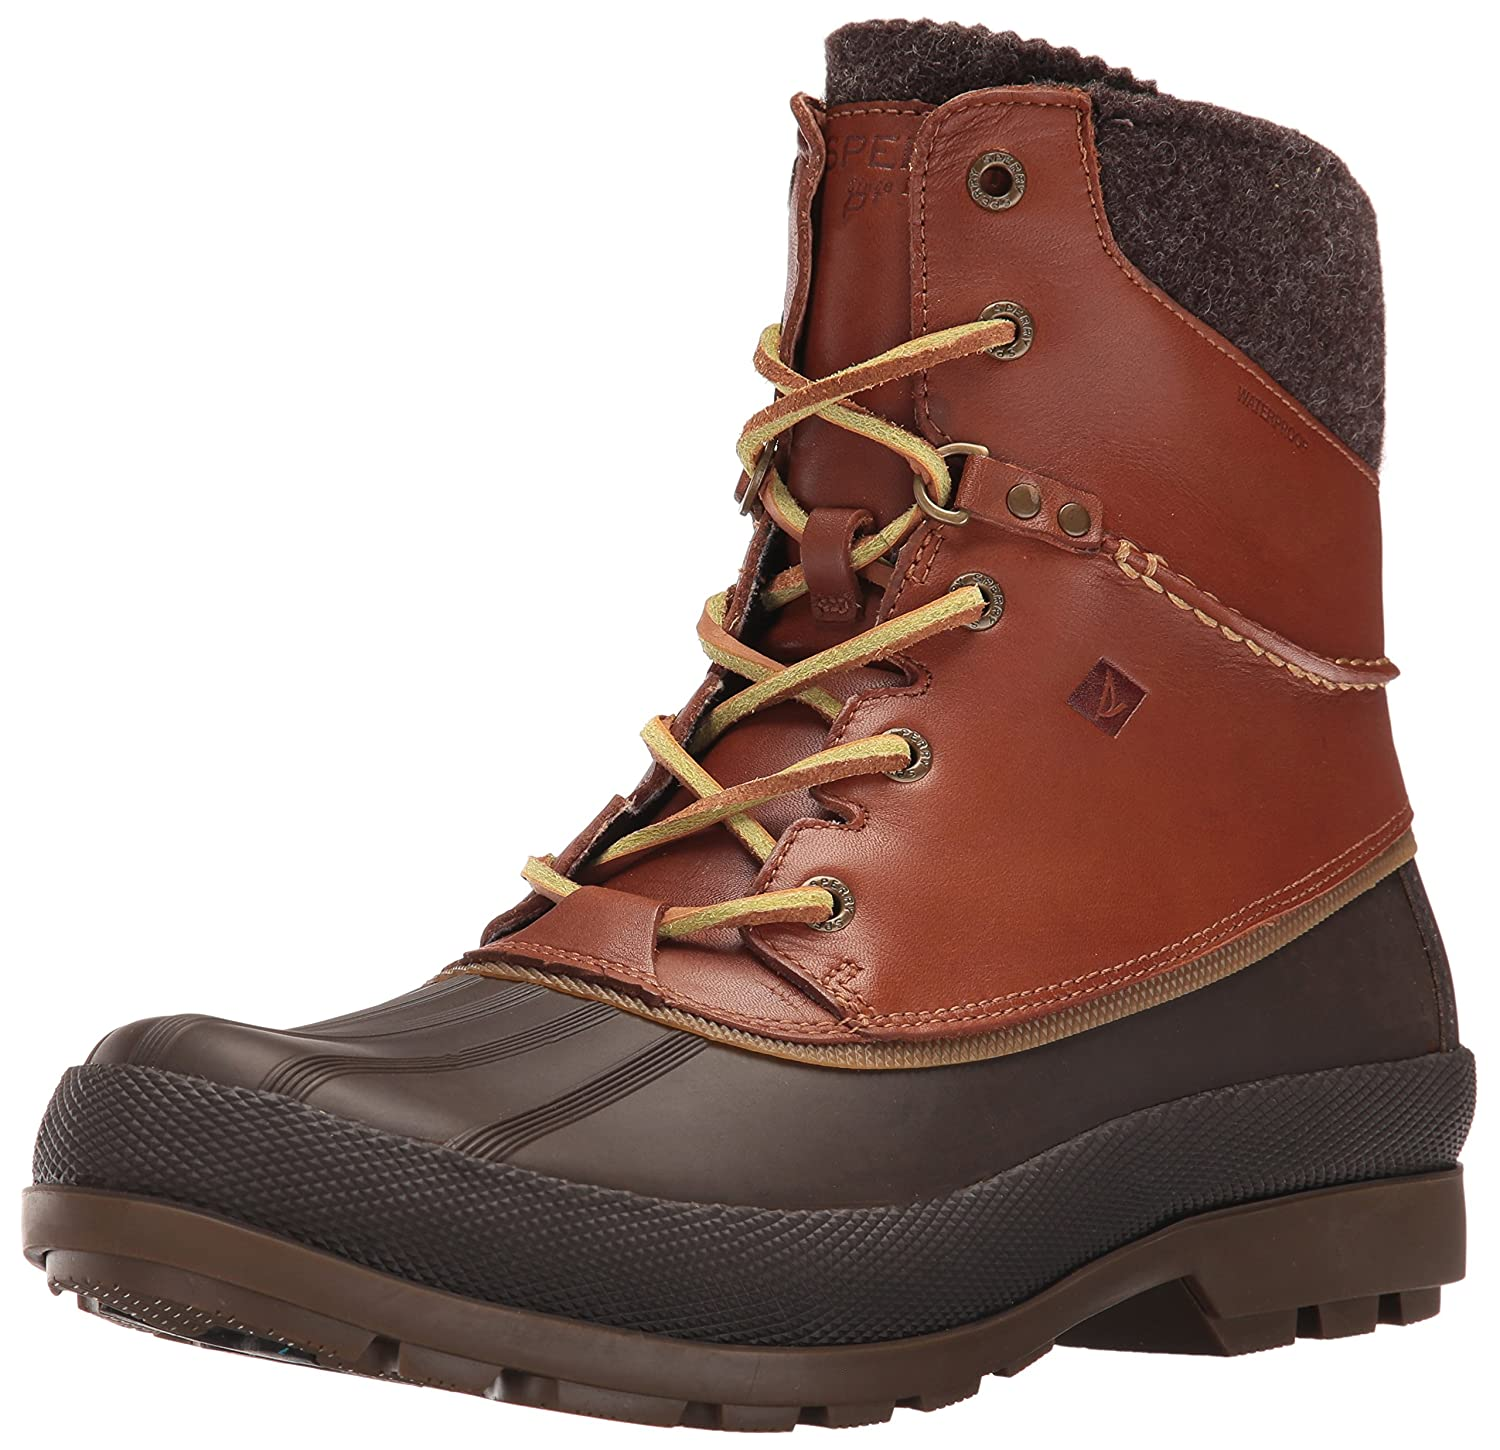 Sperry Top-Sider Men's Cold Bay Winter Boot COLD BAY BOOT